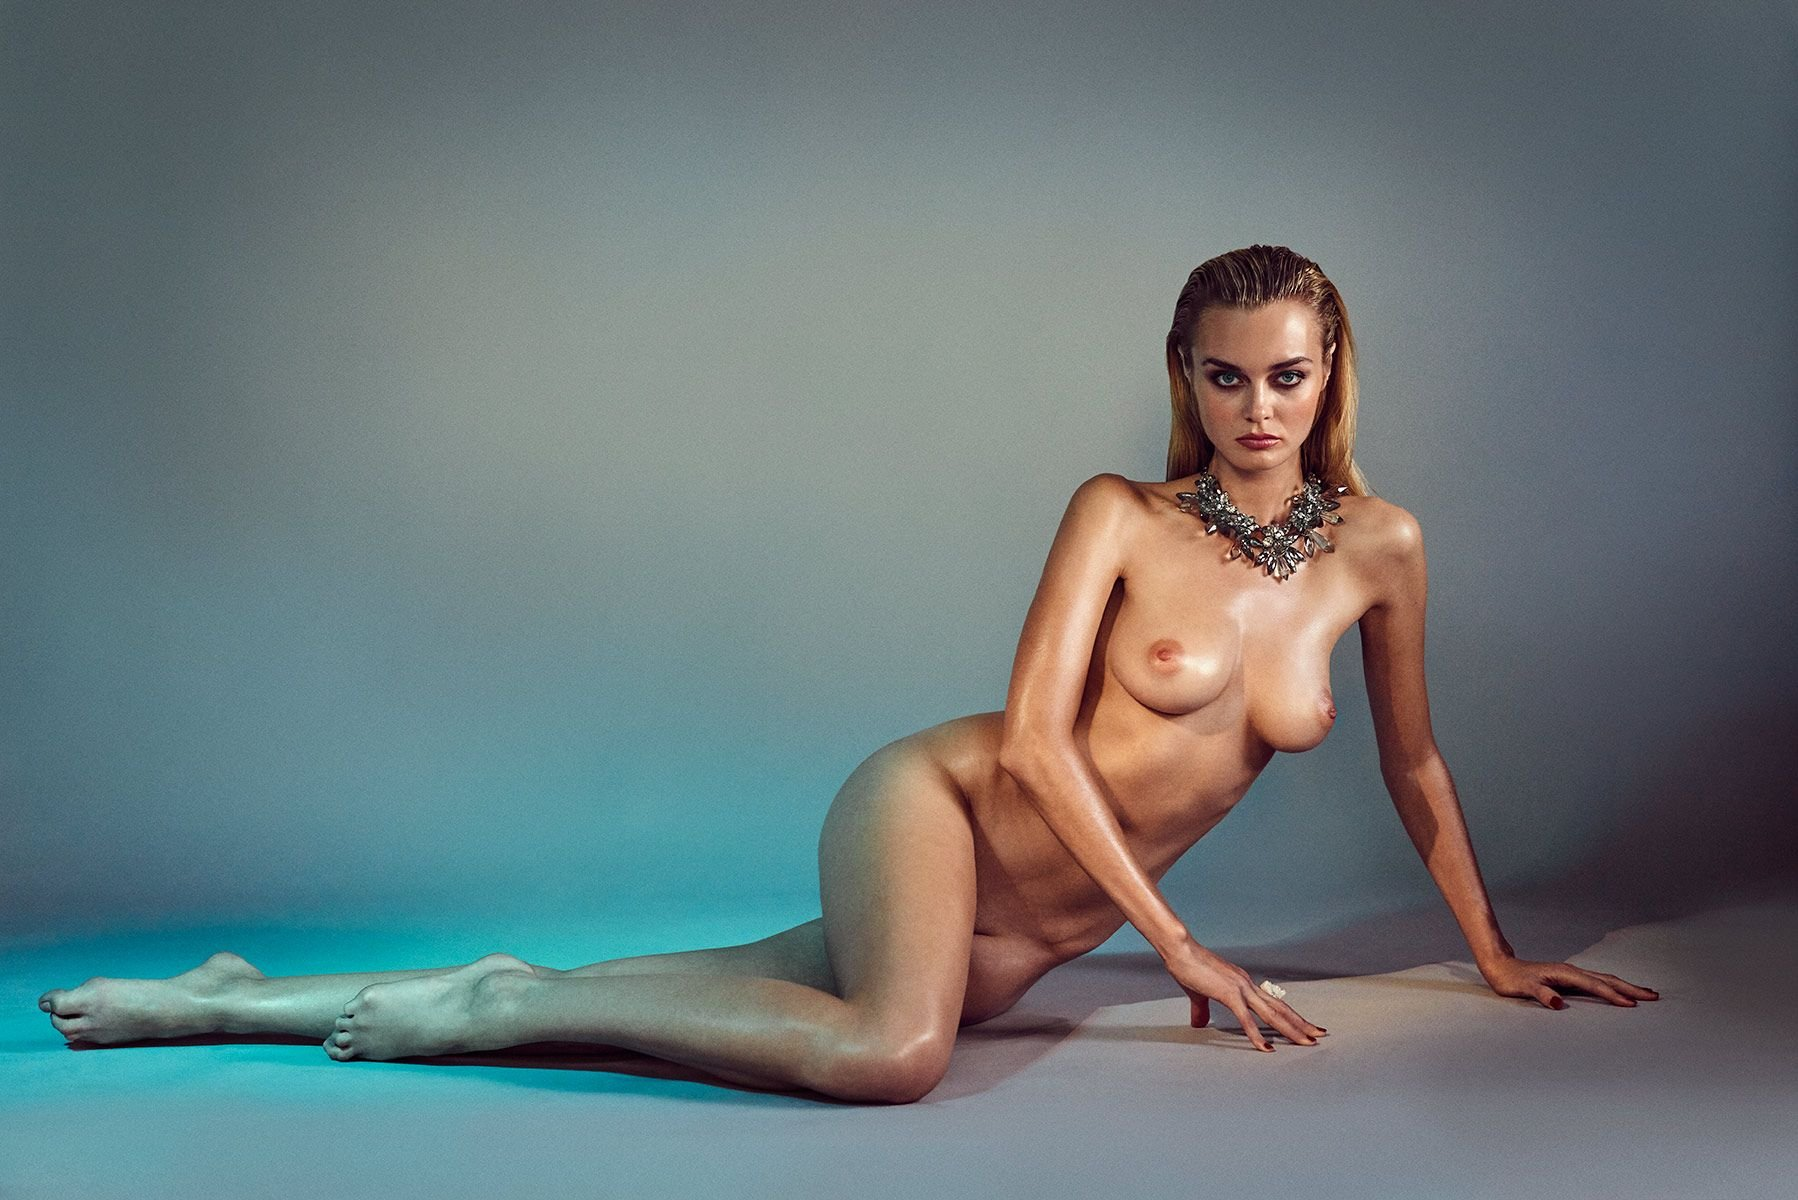 Young Signe Rasmussen Naked nudes (19 photo), Ass, Cleavage, Selfie, braless 2006